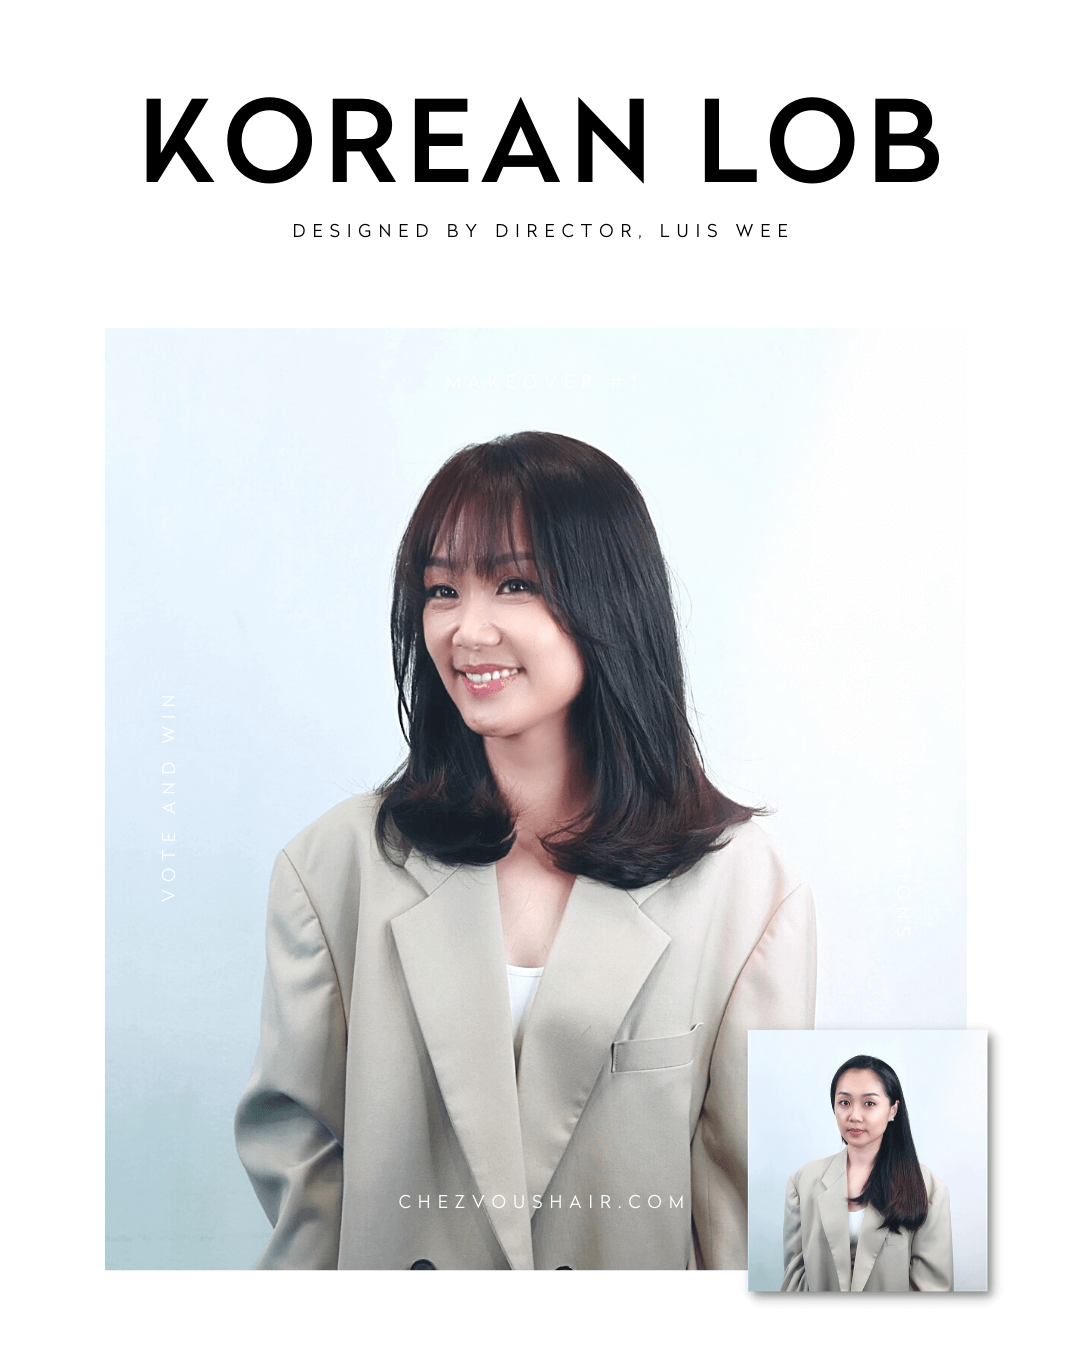 Best Short Haircuts & Medium-Length Hairstyles Trend #1: Korean Bob Hairstyle | Designed by Director of Chez Vous Hair Salon, Luis Wee | Services: Digital Perm, Root Perm, Haircut